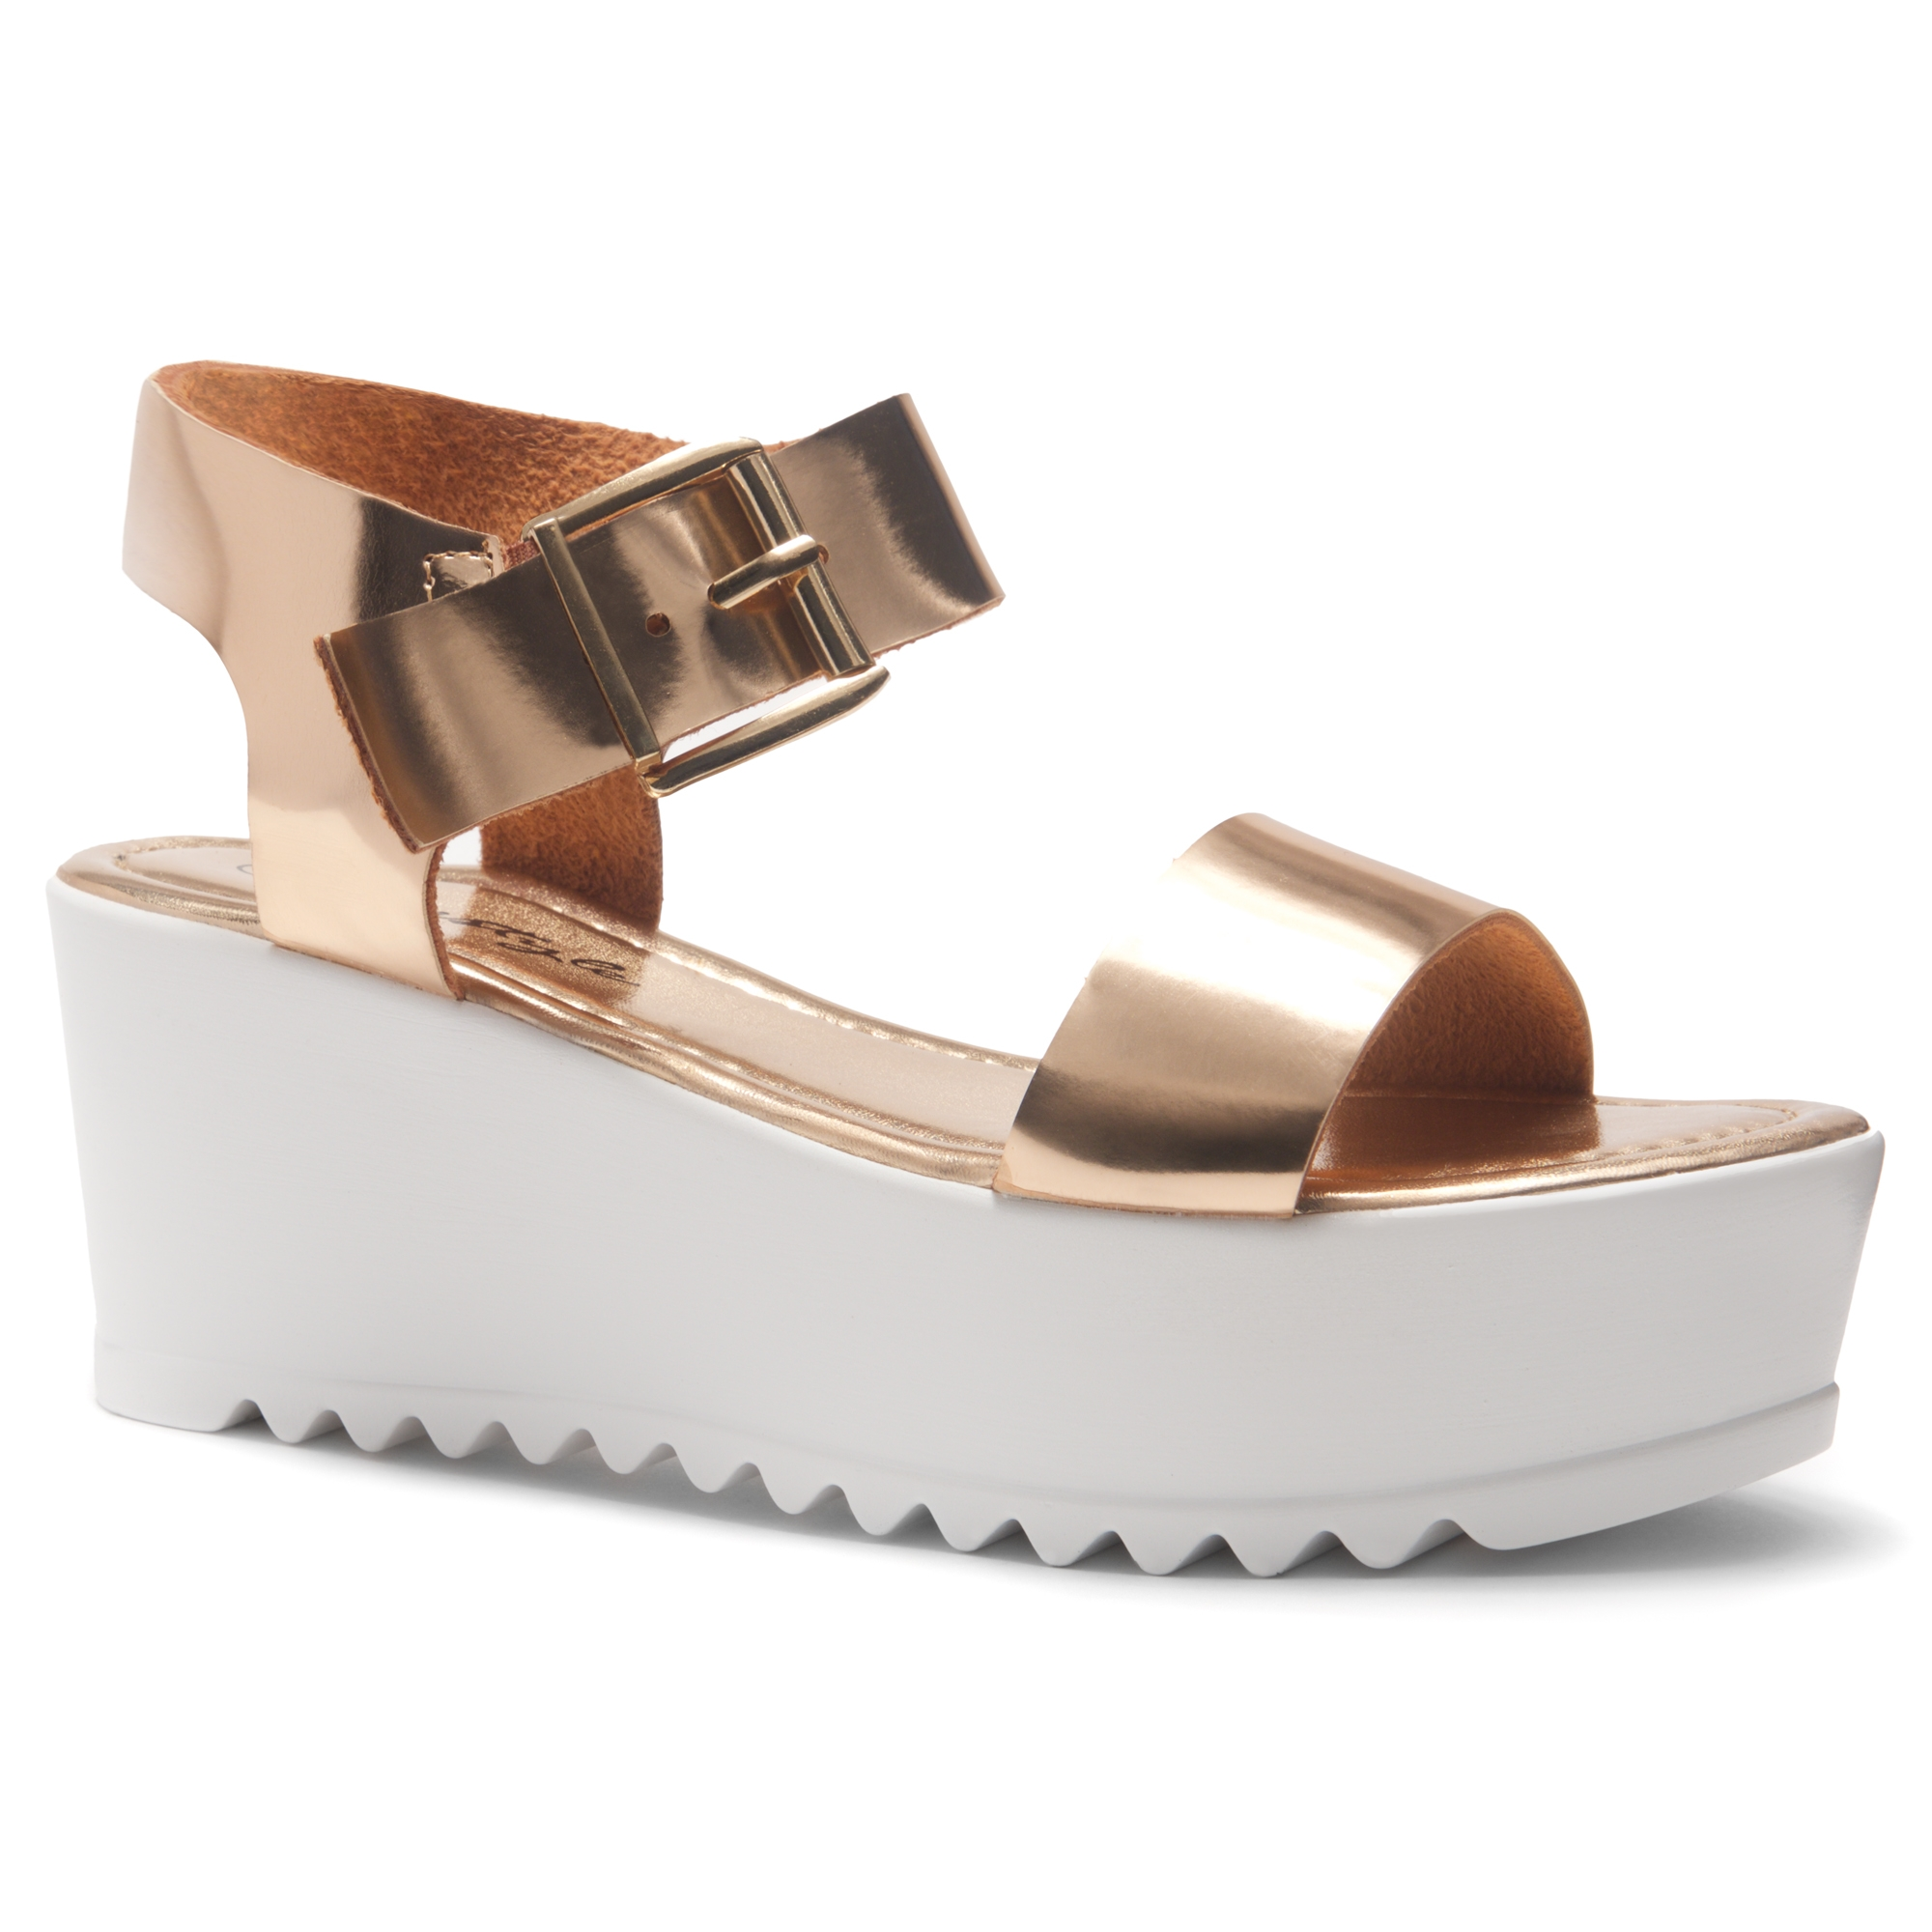 f21832381263 HerStyle Carita- Open Toe Ankle Strap Platform Wedge (RoseGold)